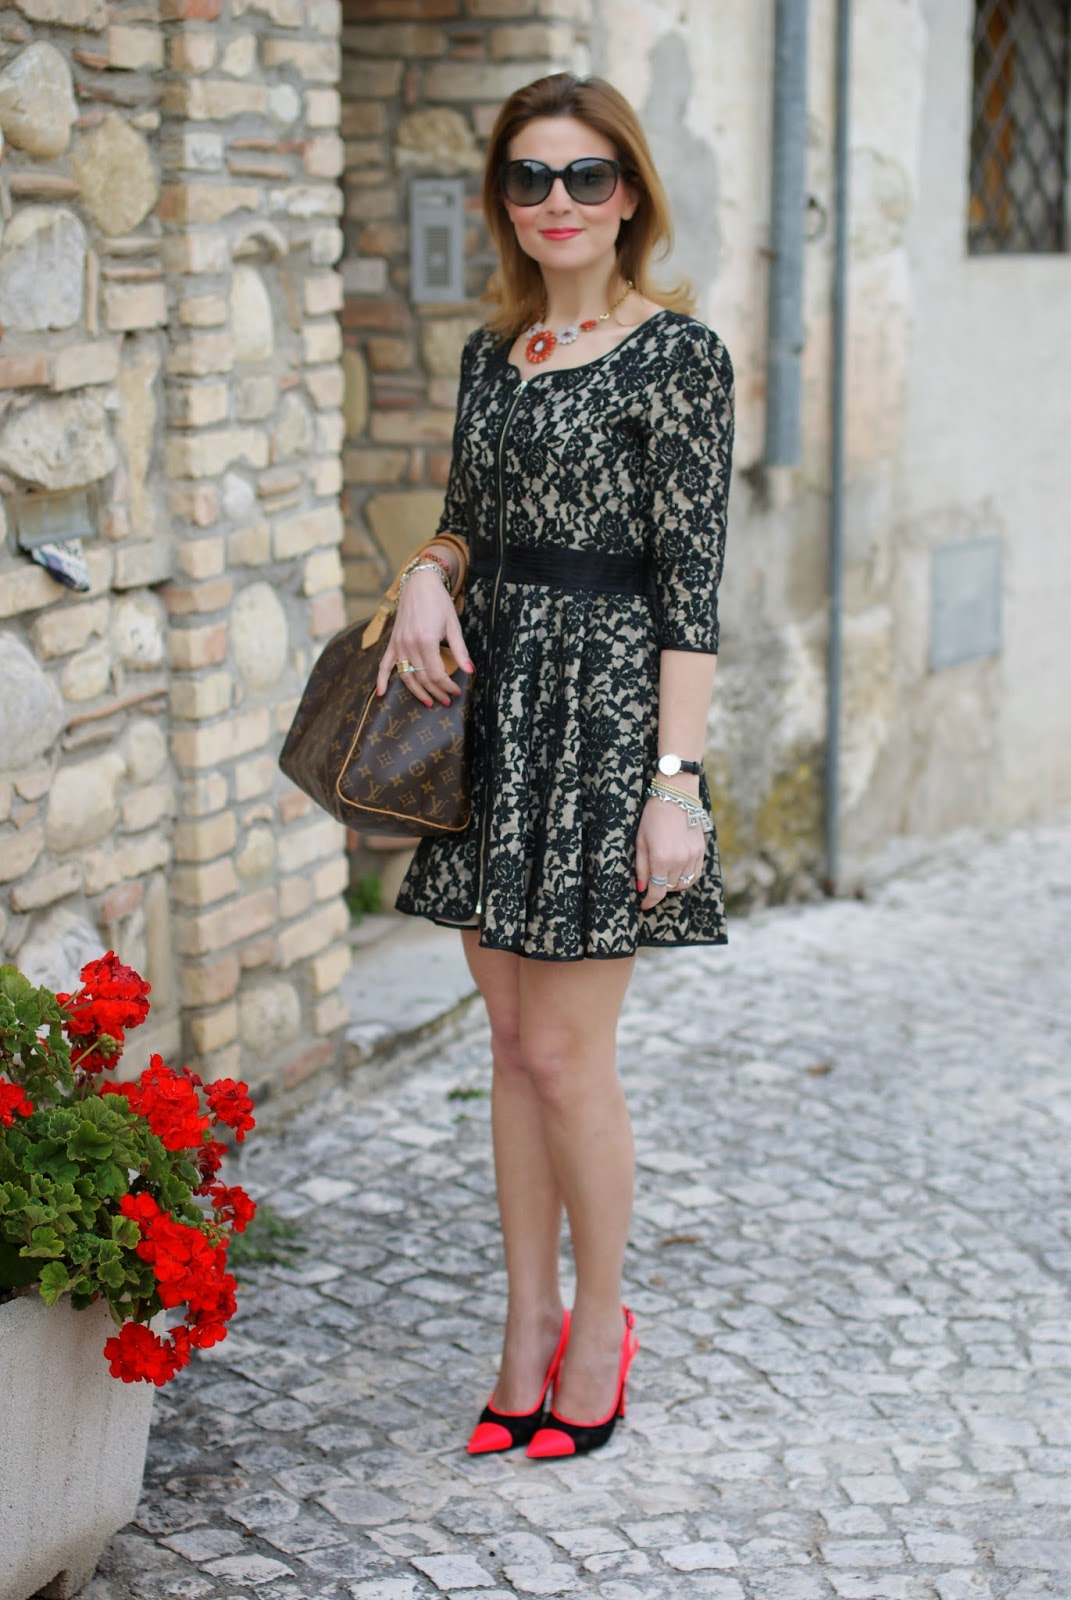 Blackfive dress, lace dress, Sodini bijoux collana arancio, Nando Muzi heels, Fashion and Cookies, fashion blogger